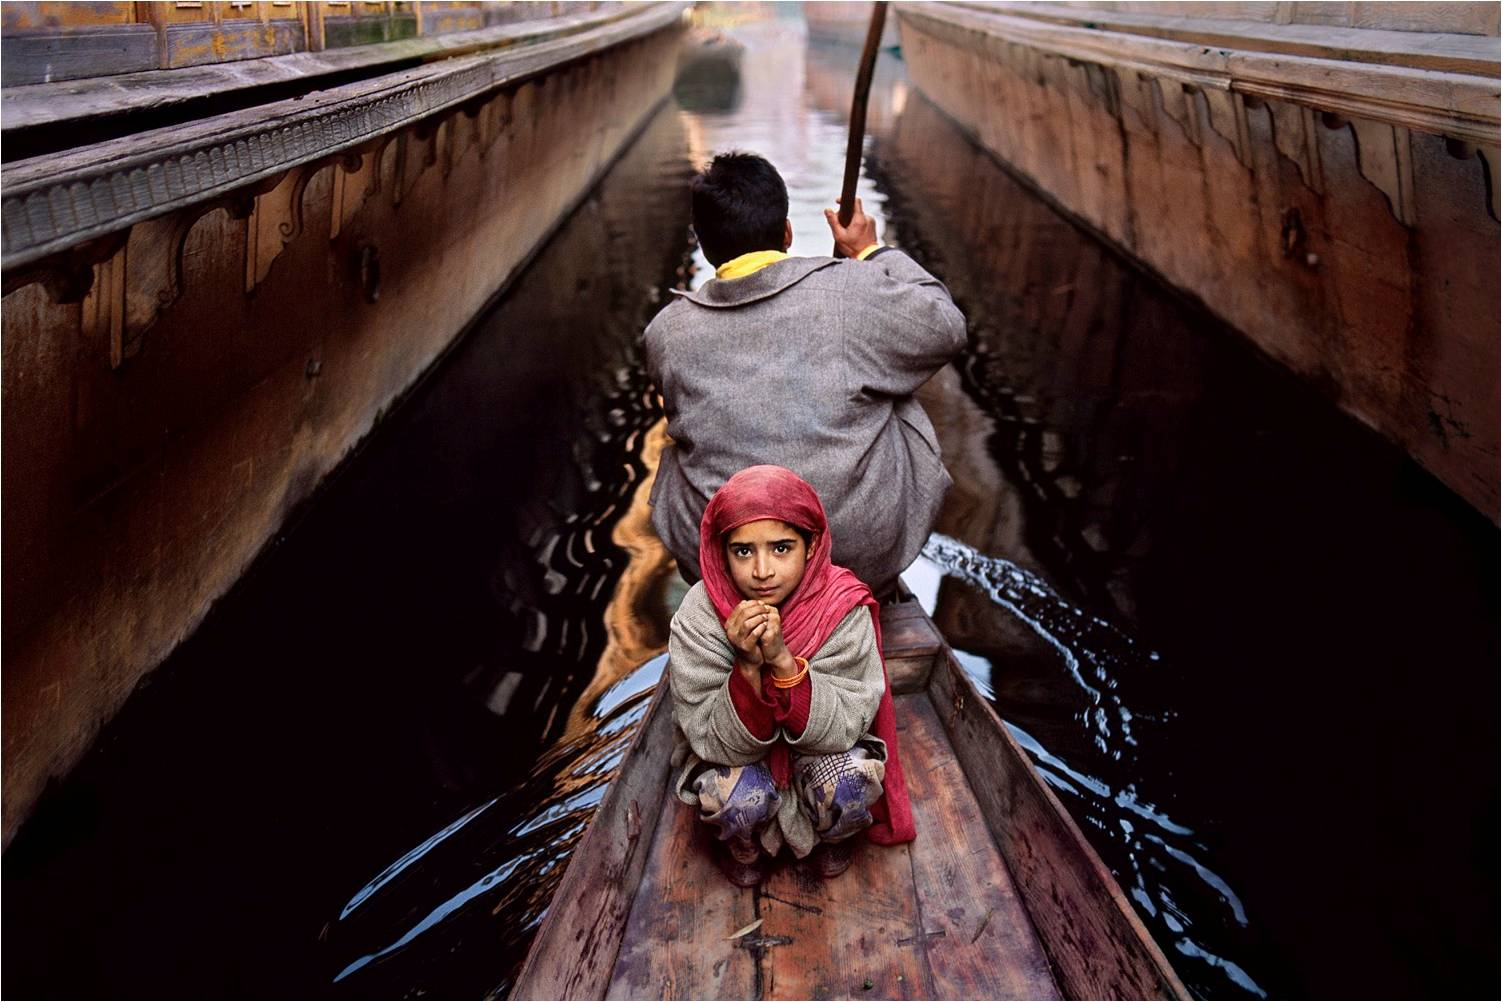 Father and daughter on Dal Lake, 1996. (Photograph by Steve McCurry. Courtesy Phaidon/Roli Books)